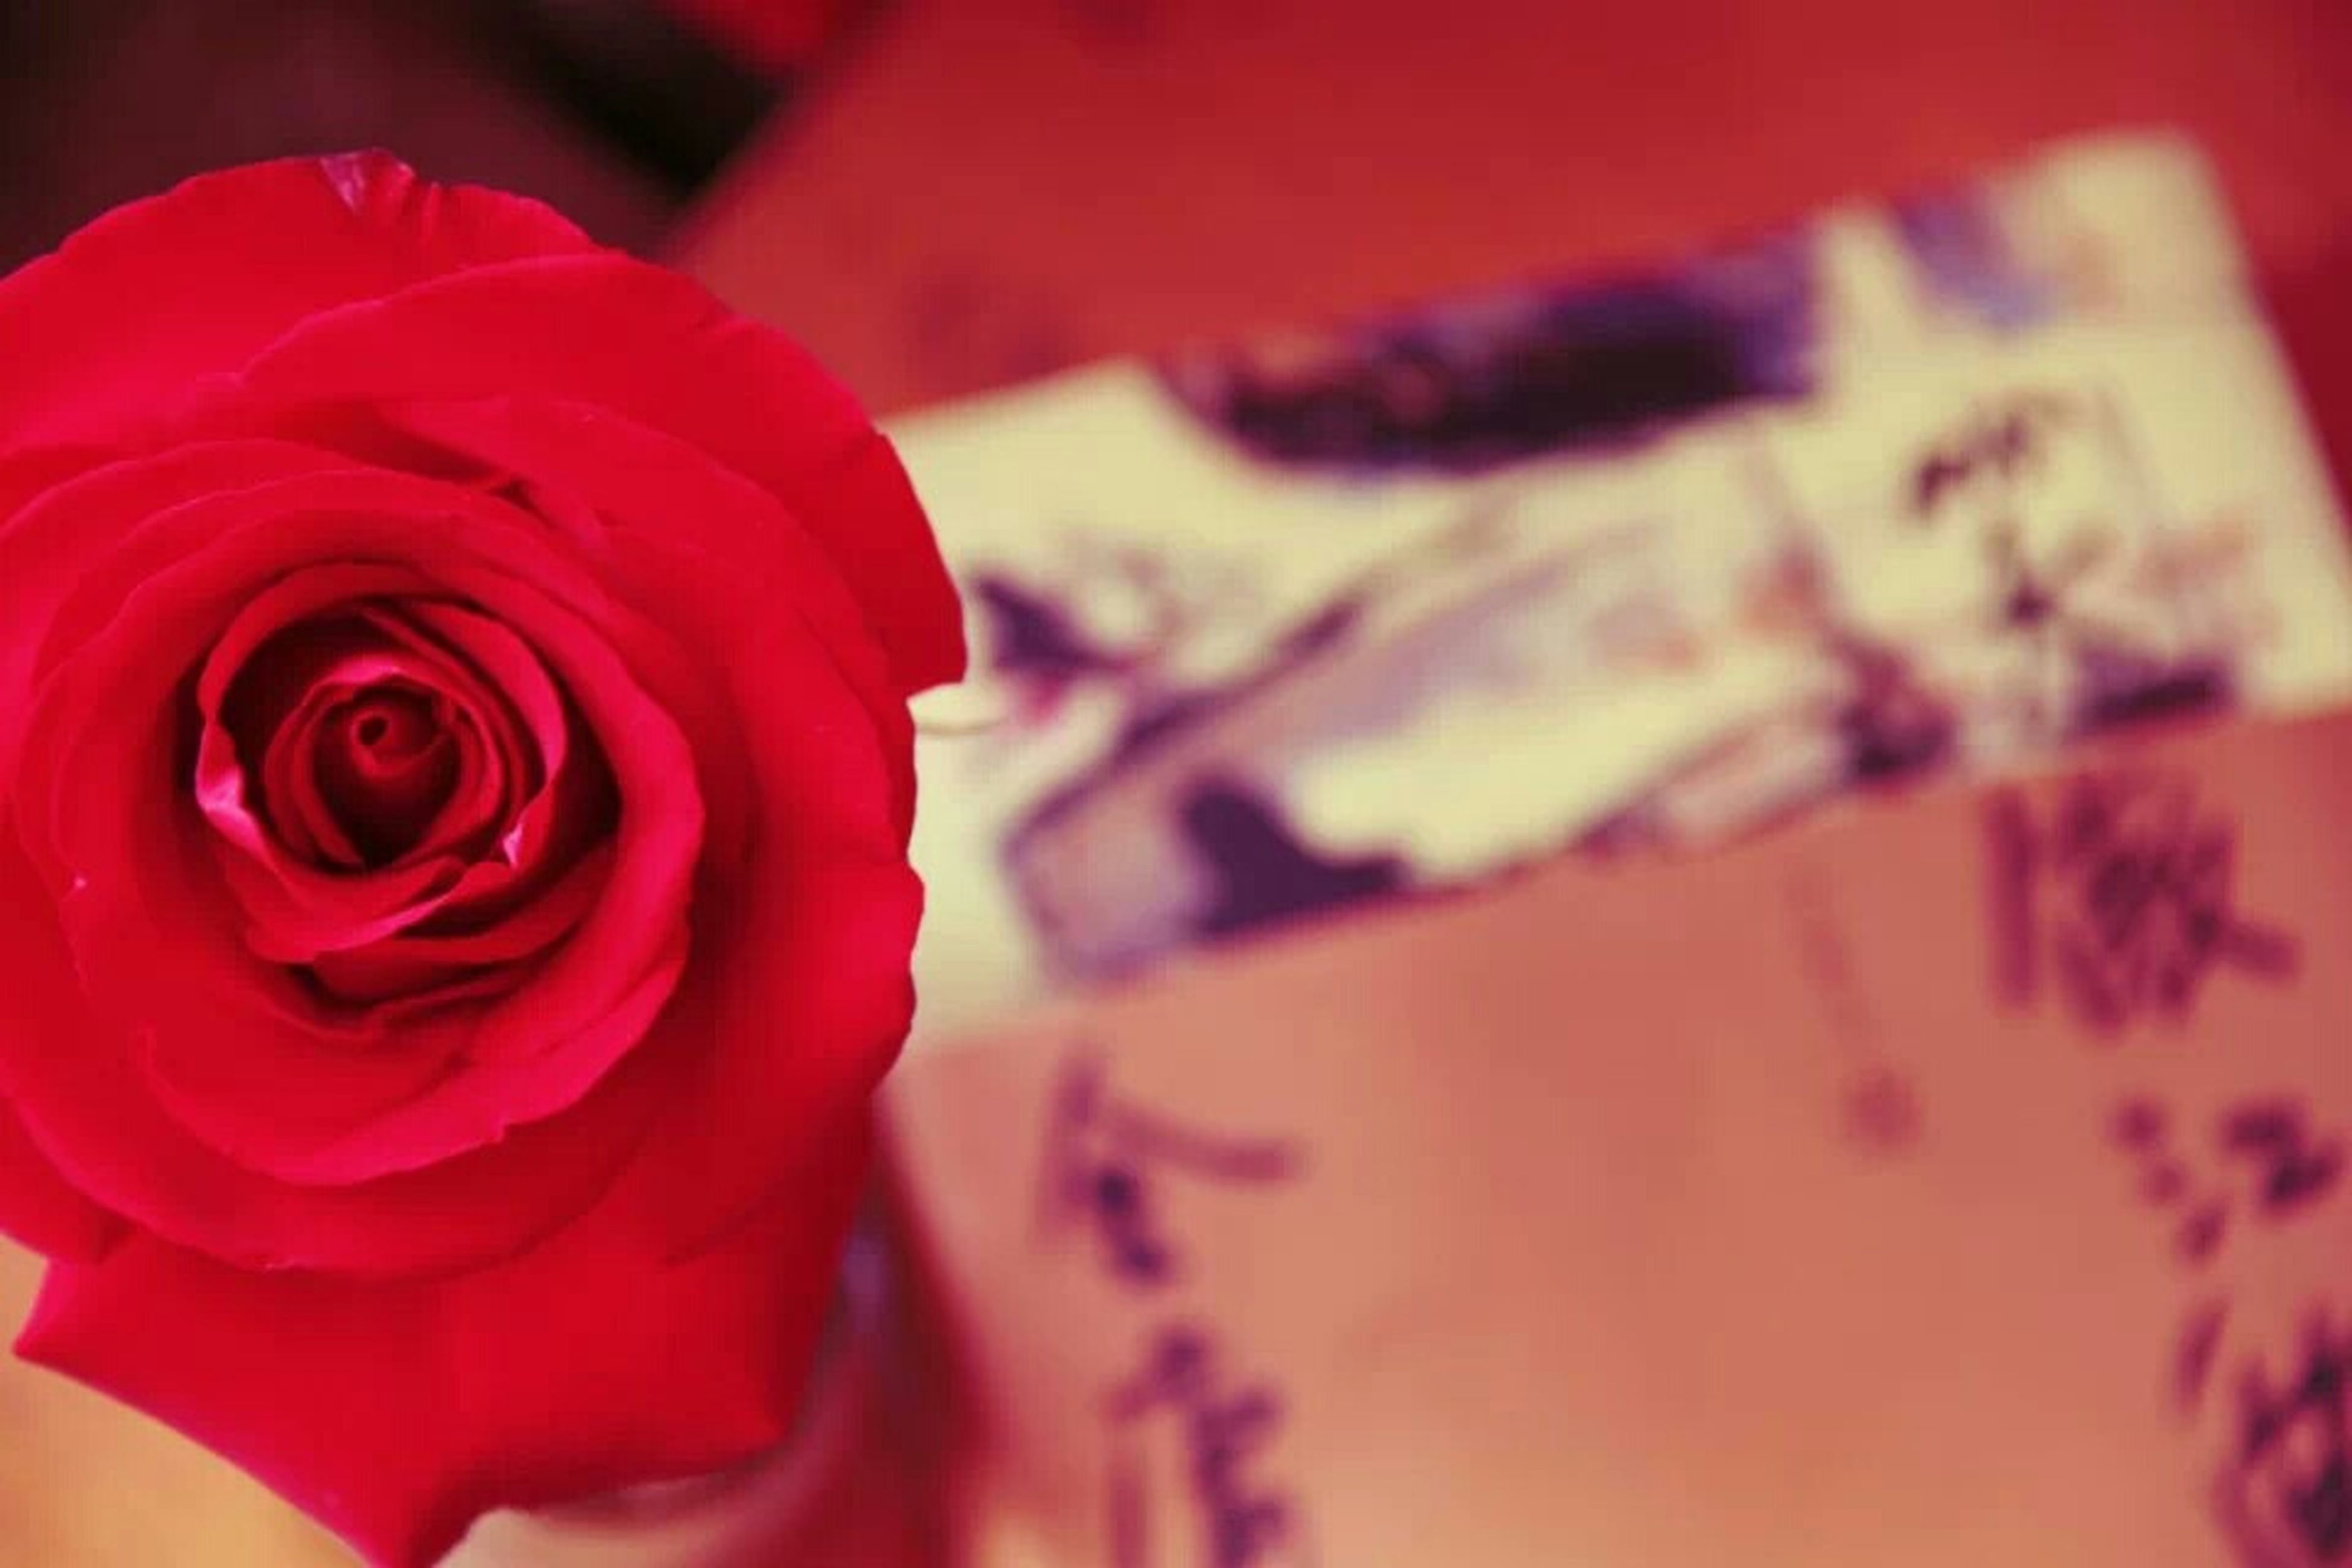 flower, petal, flower head, red, close-up, rose - flower, fragility, freshness, focus on foreground, pink color, beauty in nature, rose, indoors, single flower, selective focus, nature, blooming, no people, love, softness